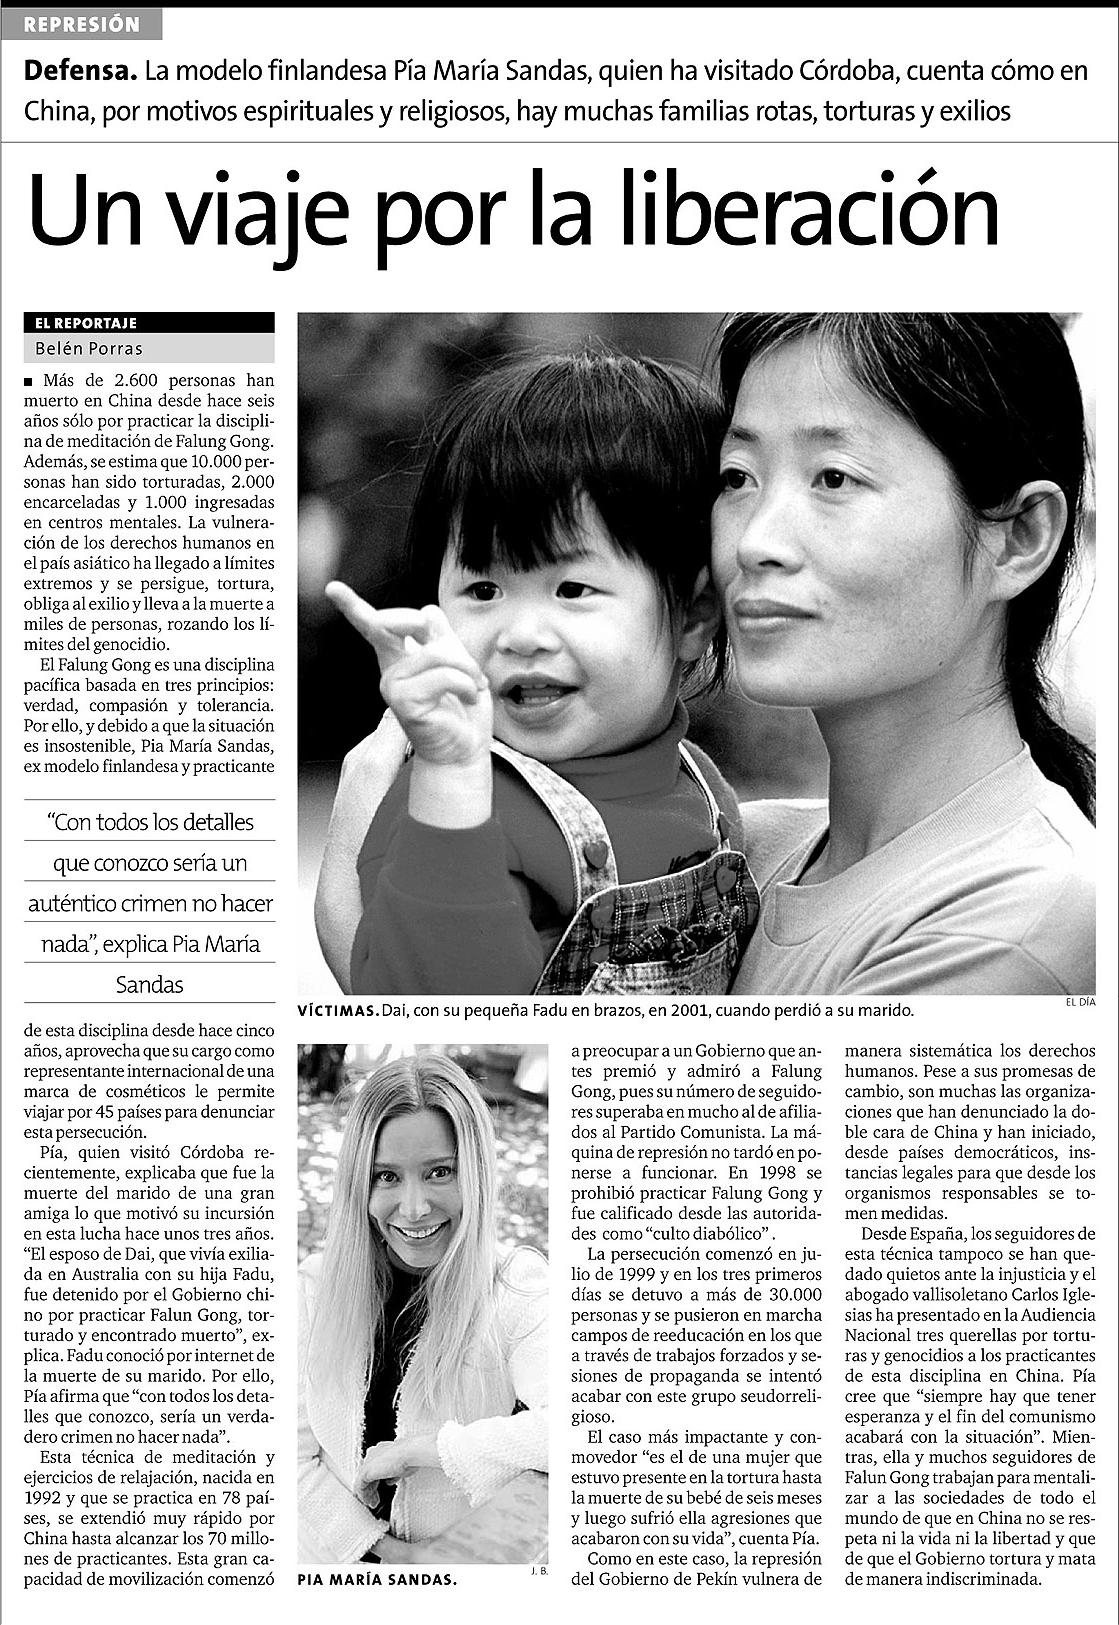 Spanish newspaper exposes the brutality of the chinese communist party